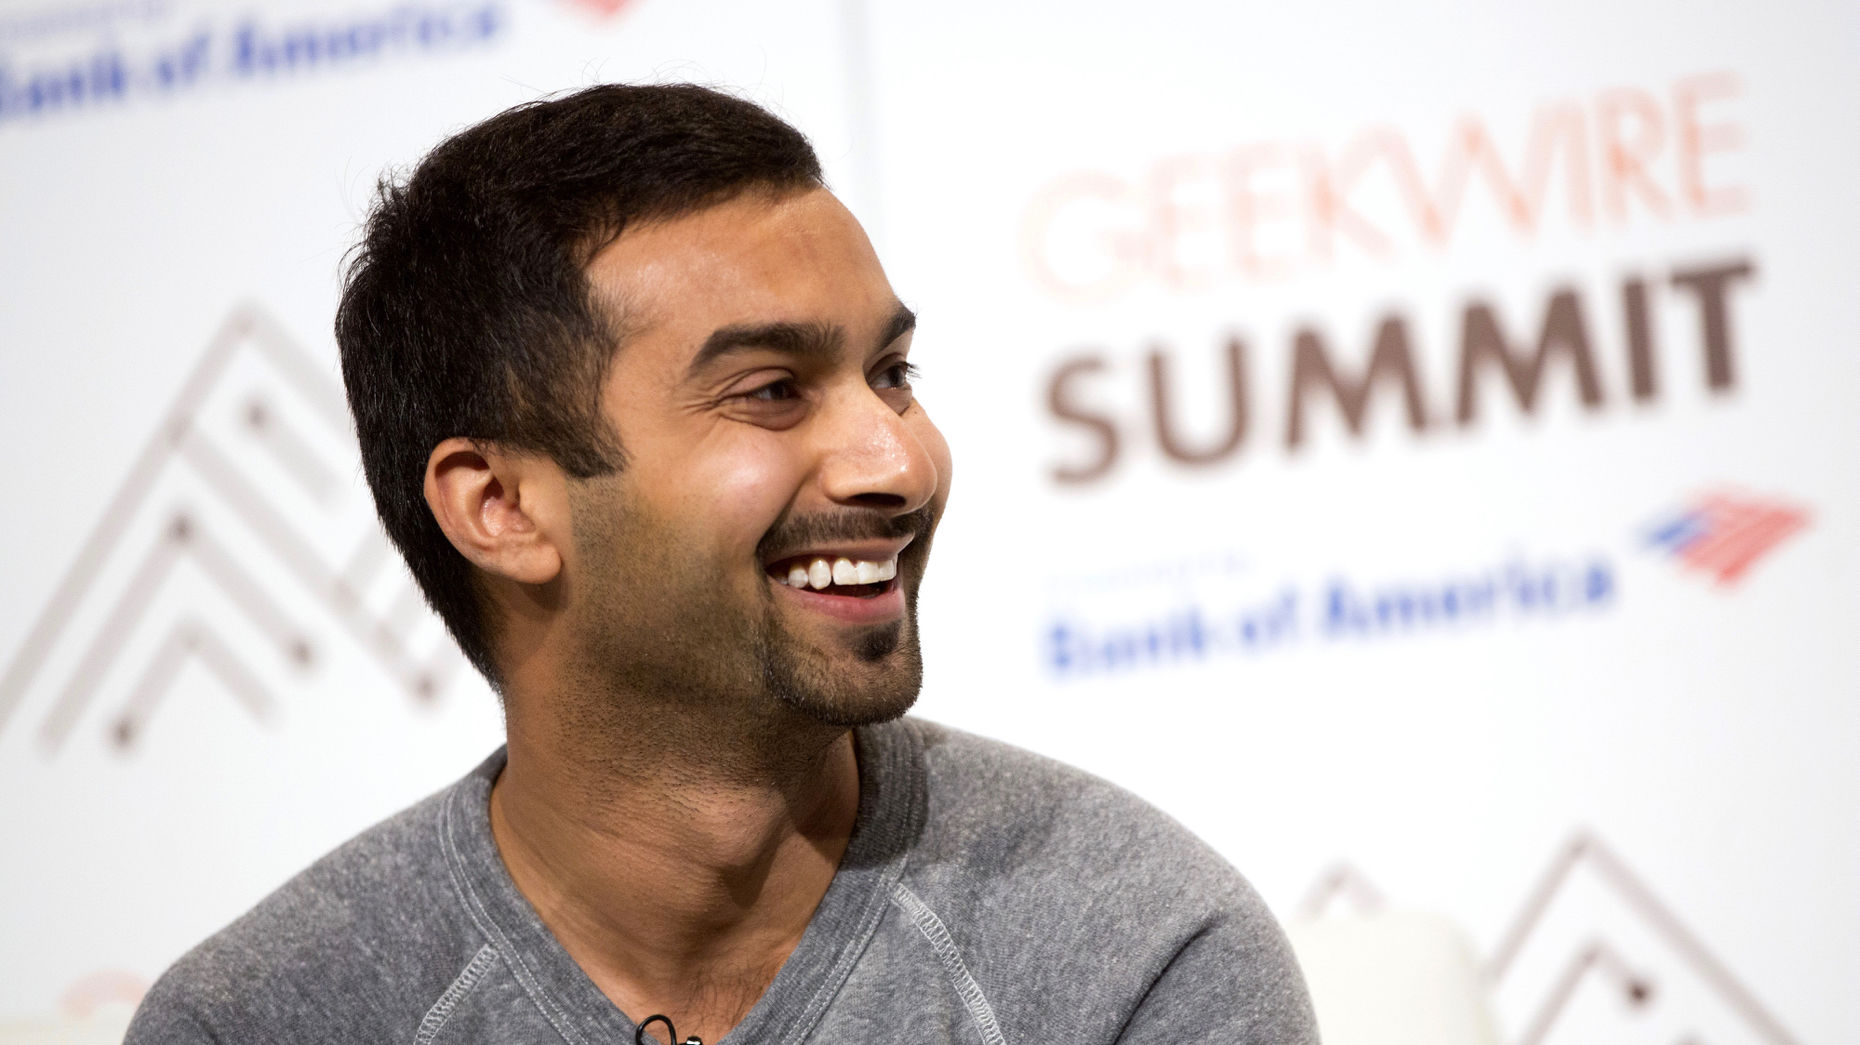 Apoorva Mehta, founder and CEO of Instacart, at an event last year. Photo by Bloomberg